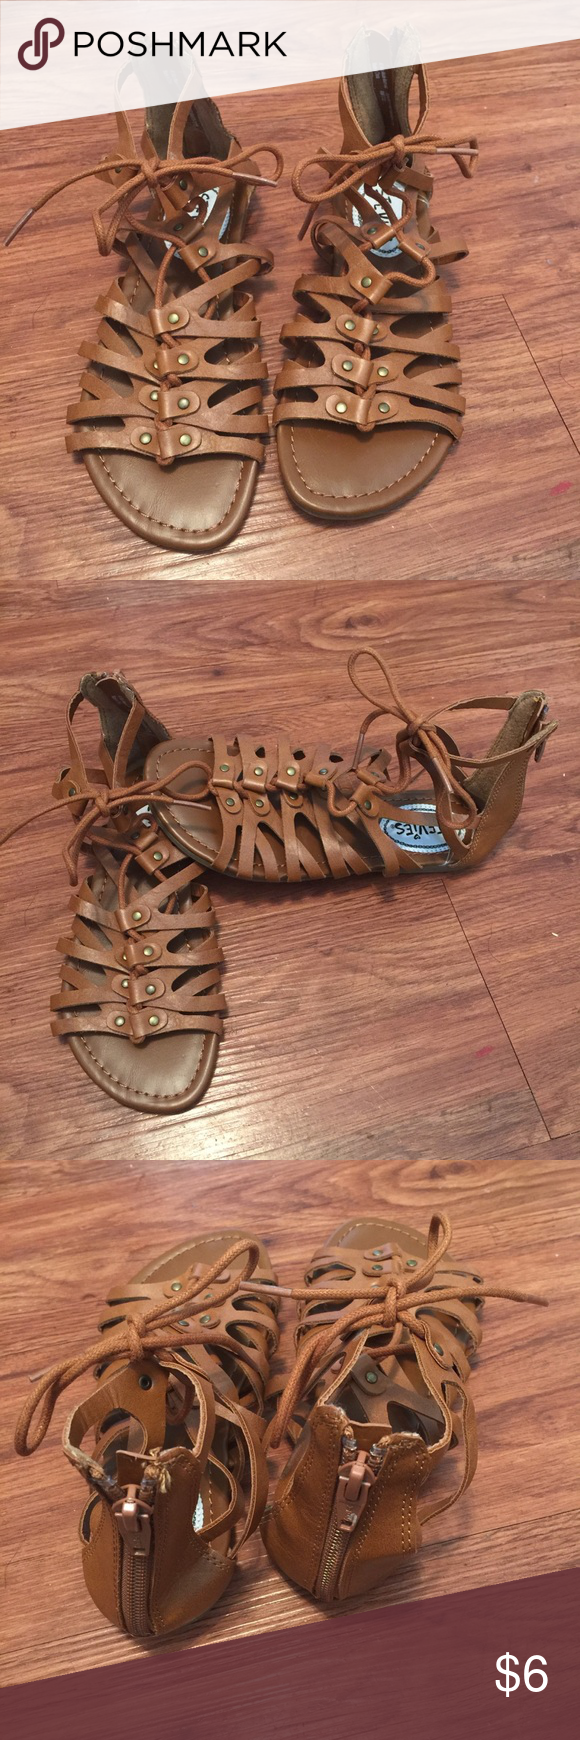 bce030594a8b 💕2 pairs of Girls Gladiator Sandals Size 13 1💕 Girls Stevie s Gladiator  Sandals BRAND NEW